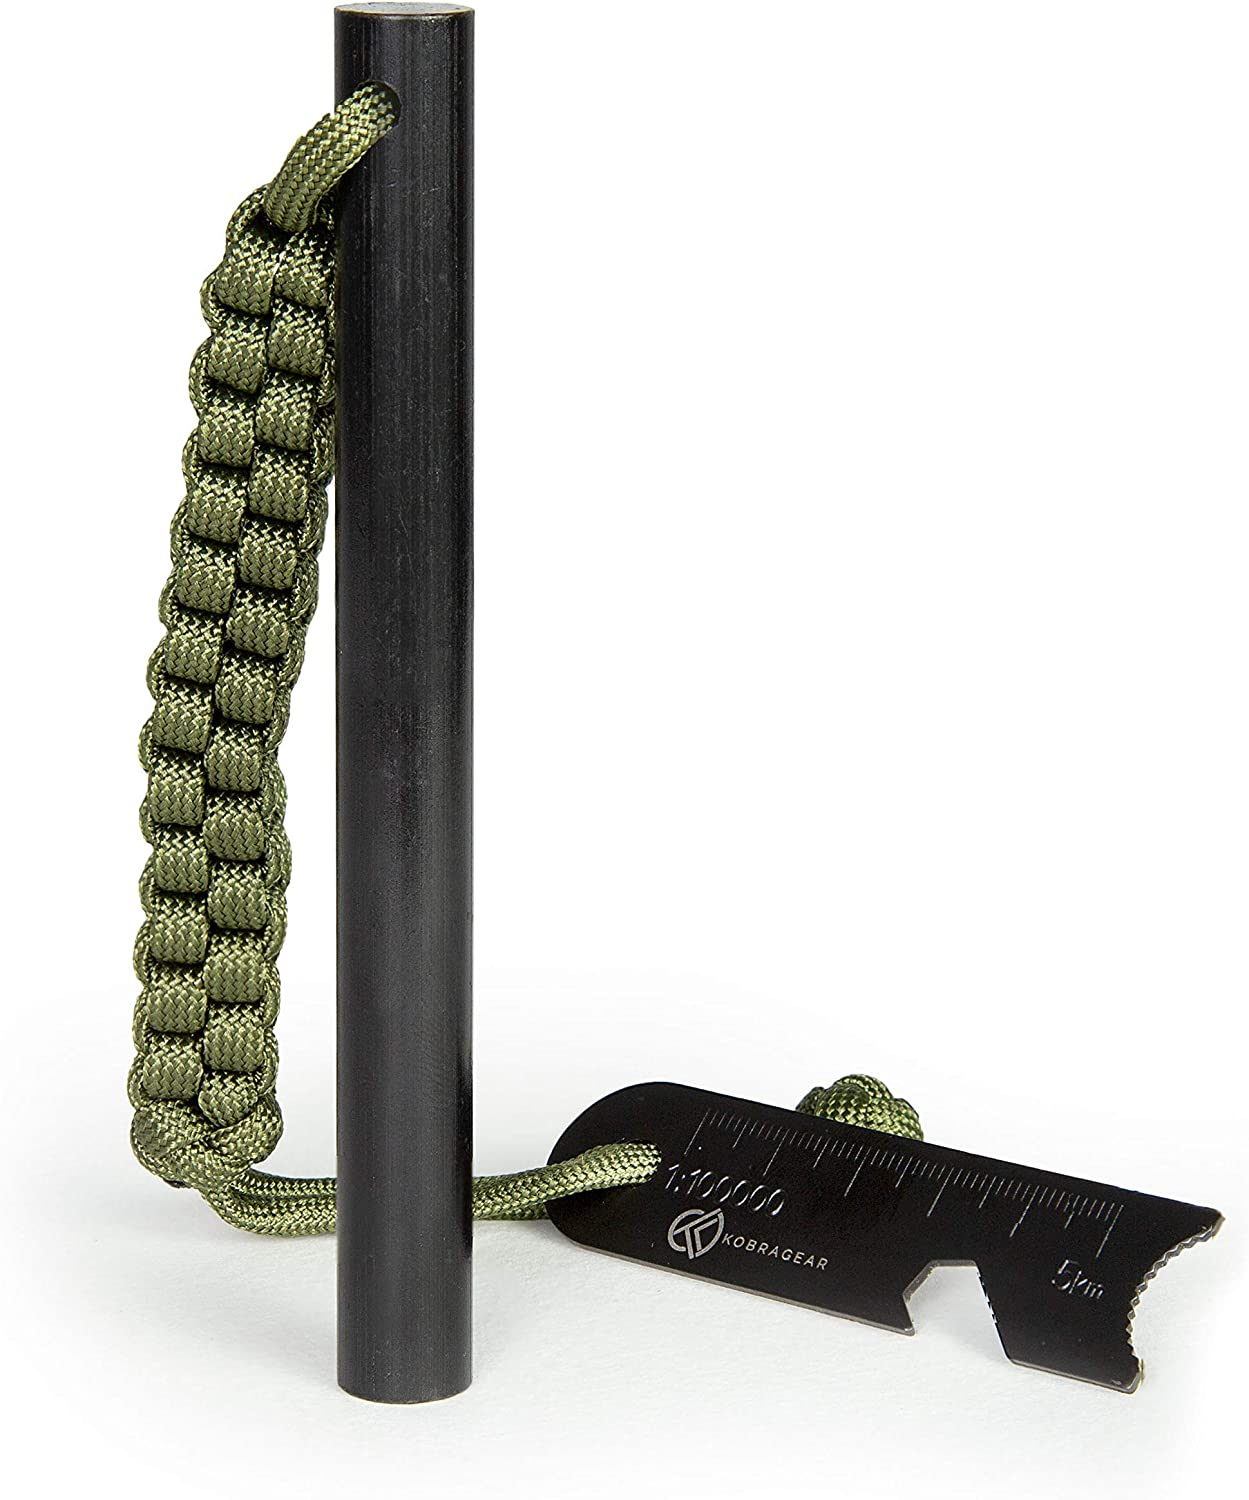 KobraGear Emergency Magnesium Fire Starter Ferrocerium Ferro Rod 5 inch x ½ inch with Survival Paracord Lanyard and Steel Multitool Striker (Green): Sports & Outdoors